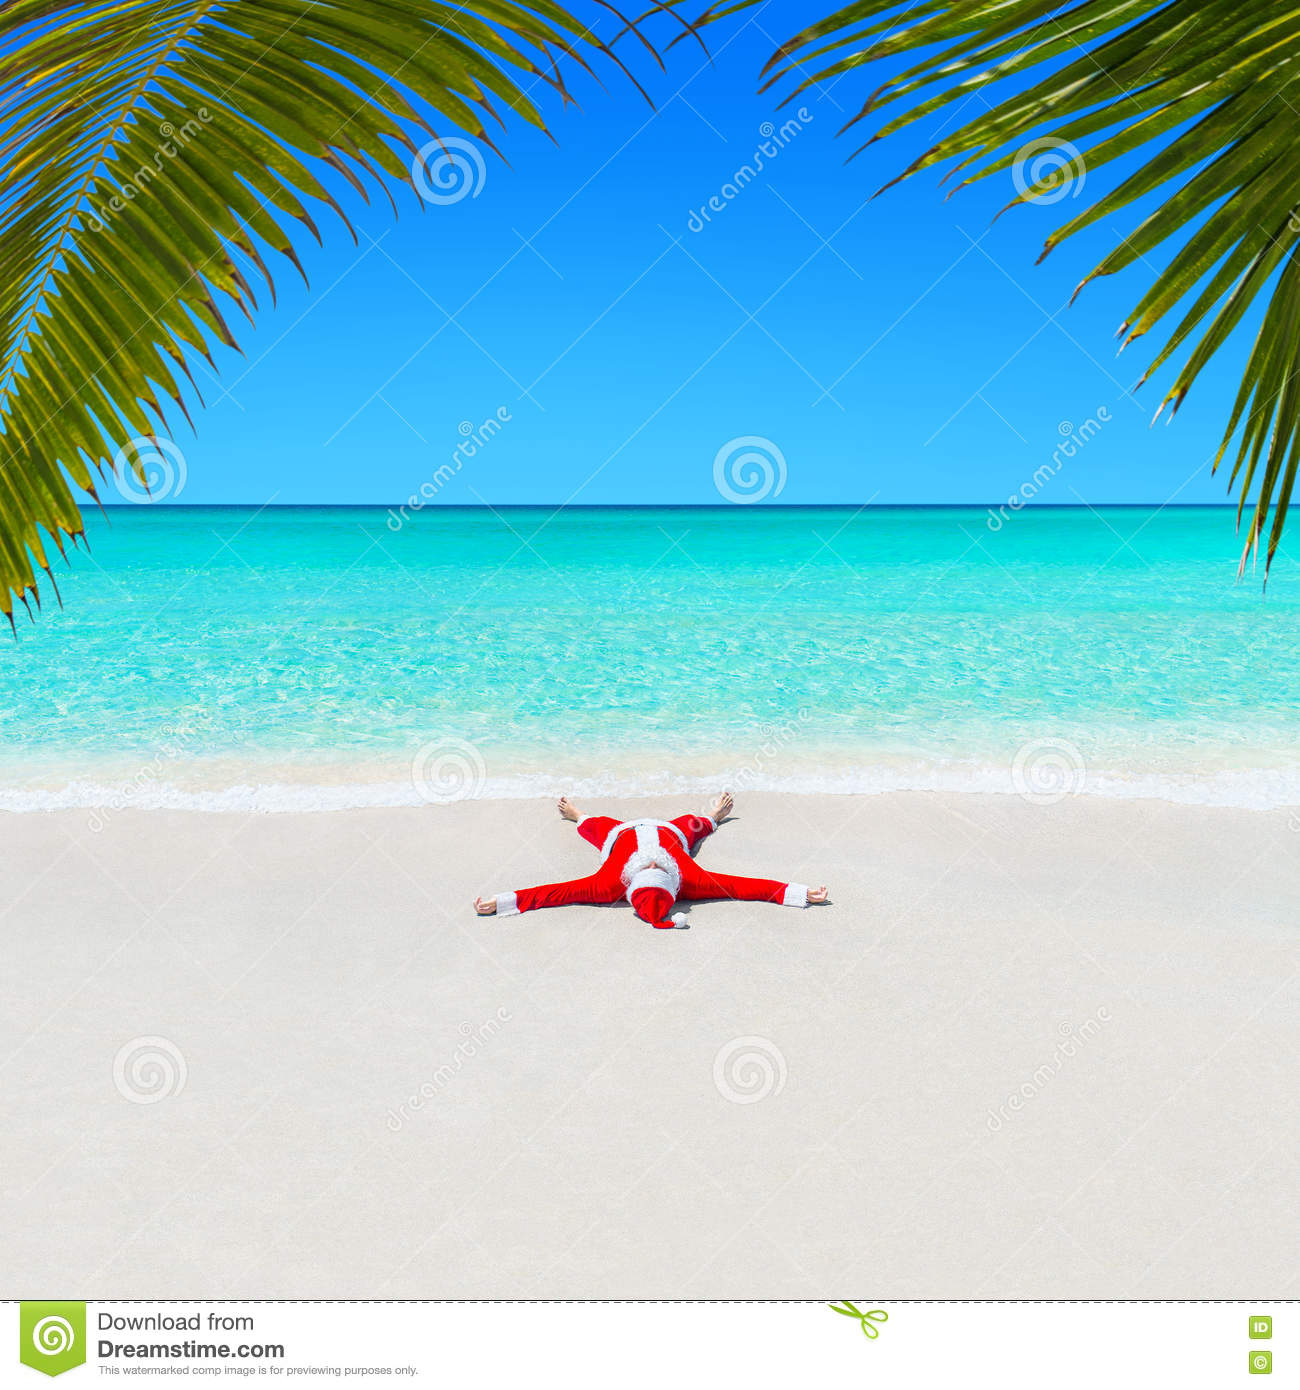 Christmas Santa Claus relaxing on sand at ocean palm beach